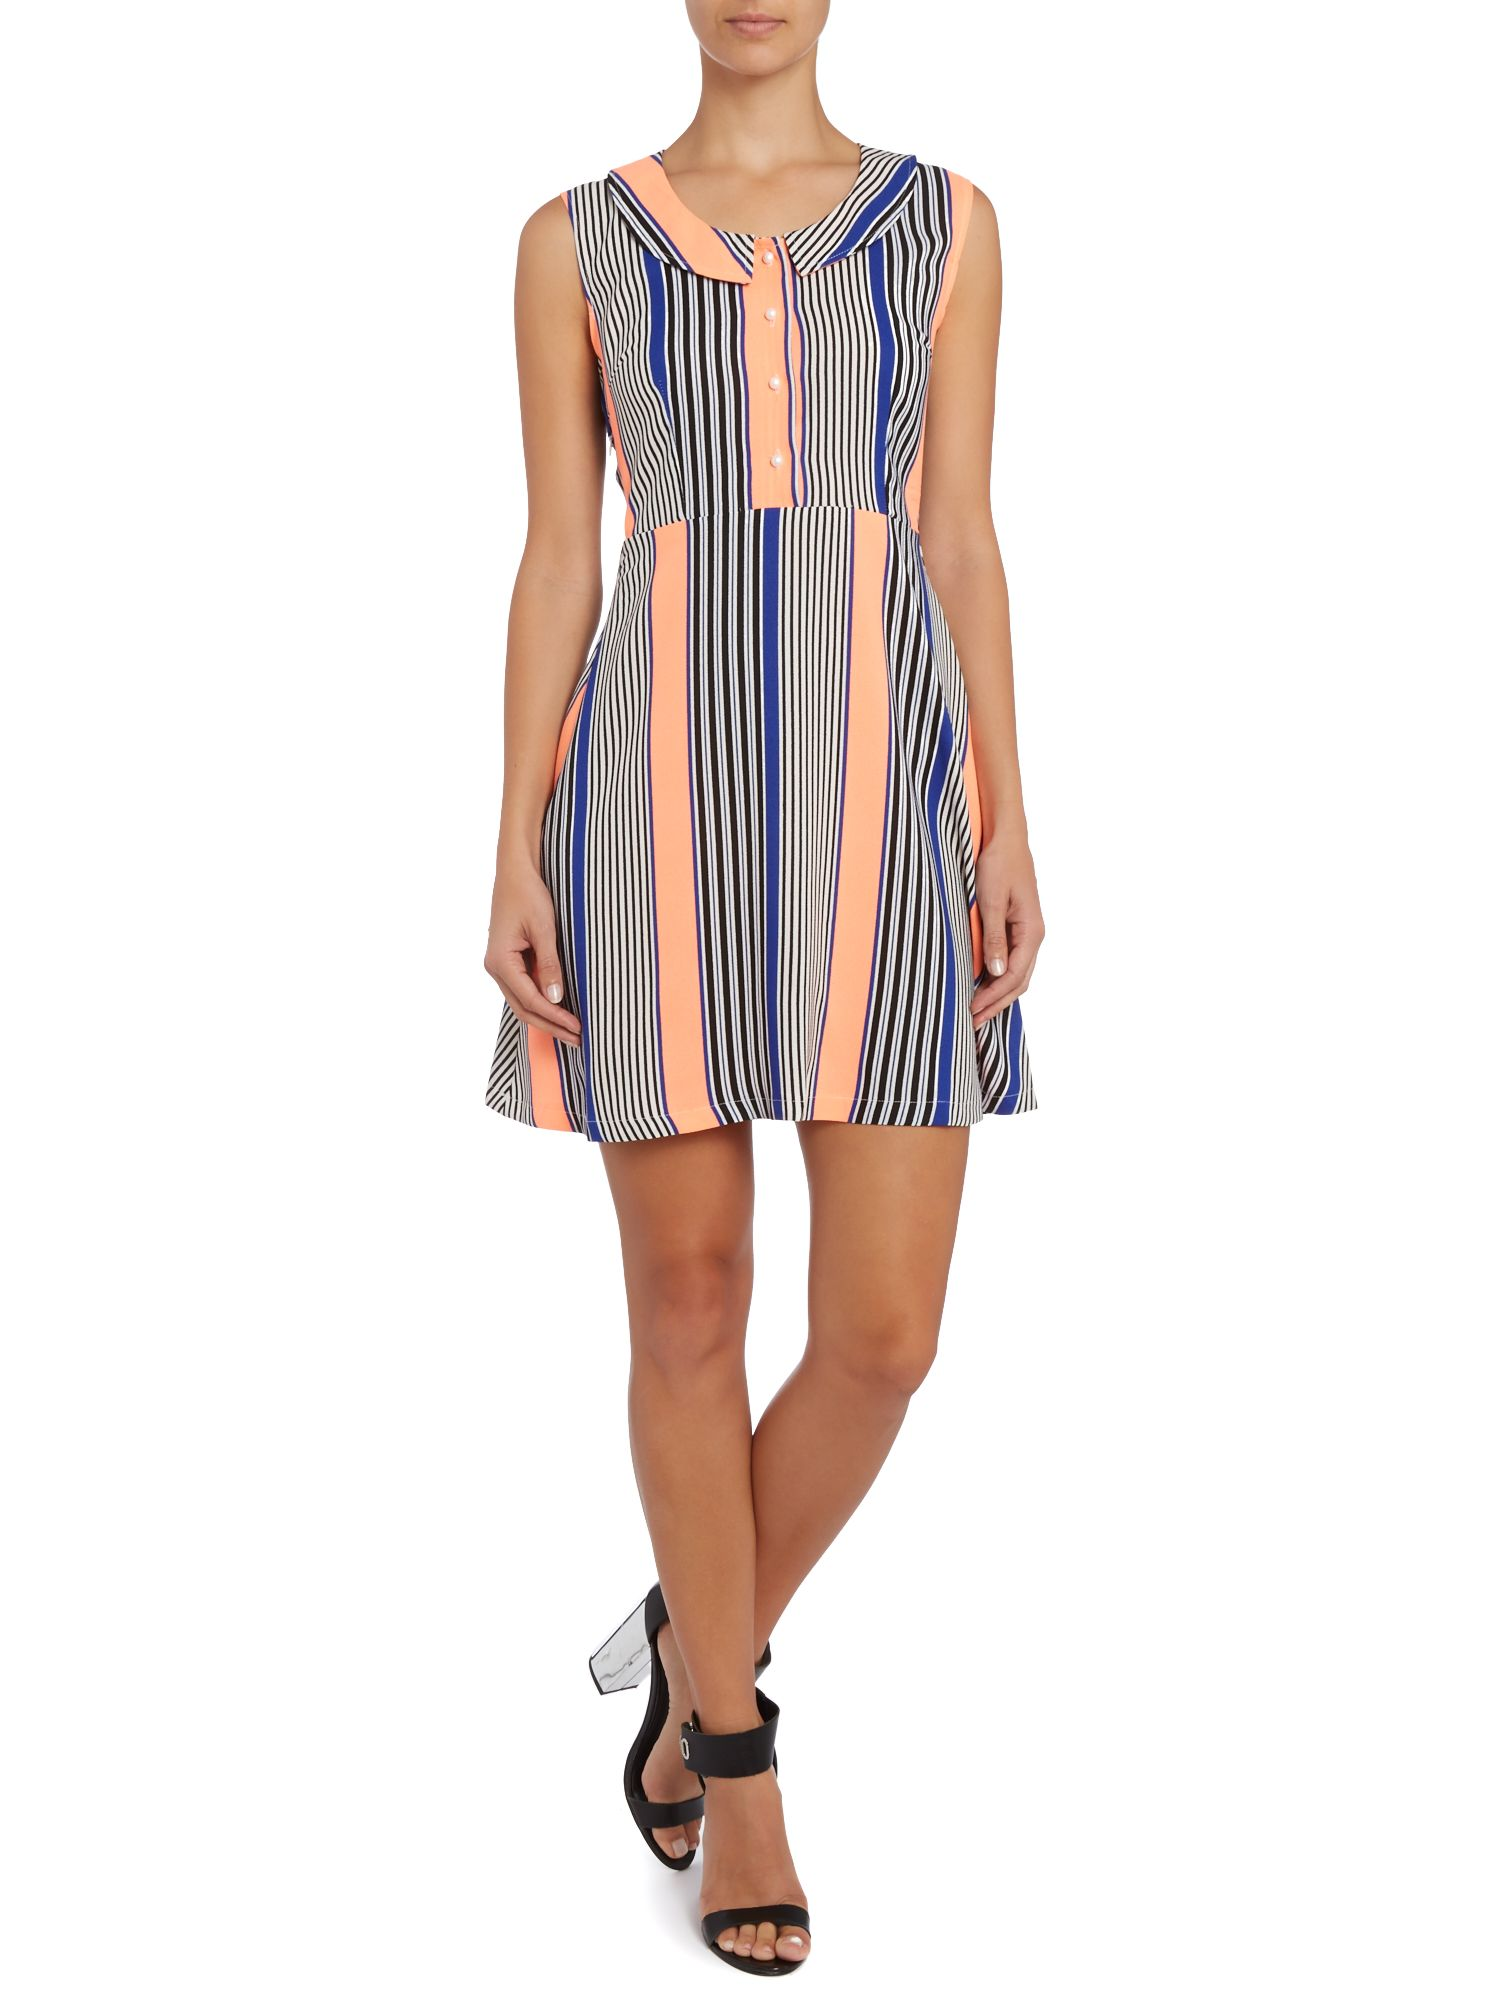 Strip print shirt dress